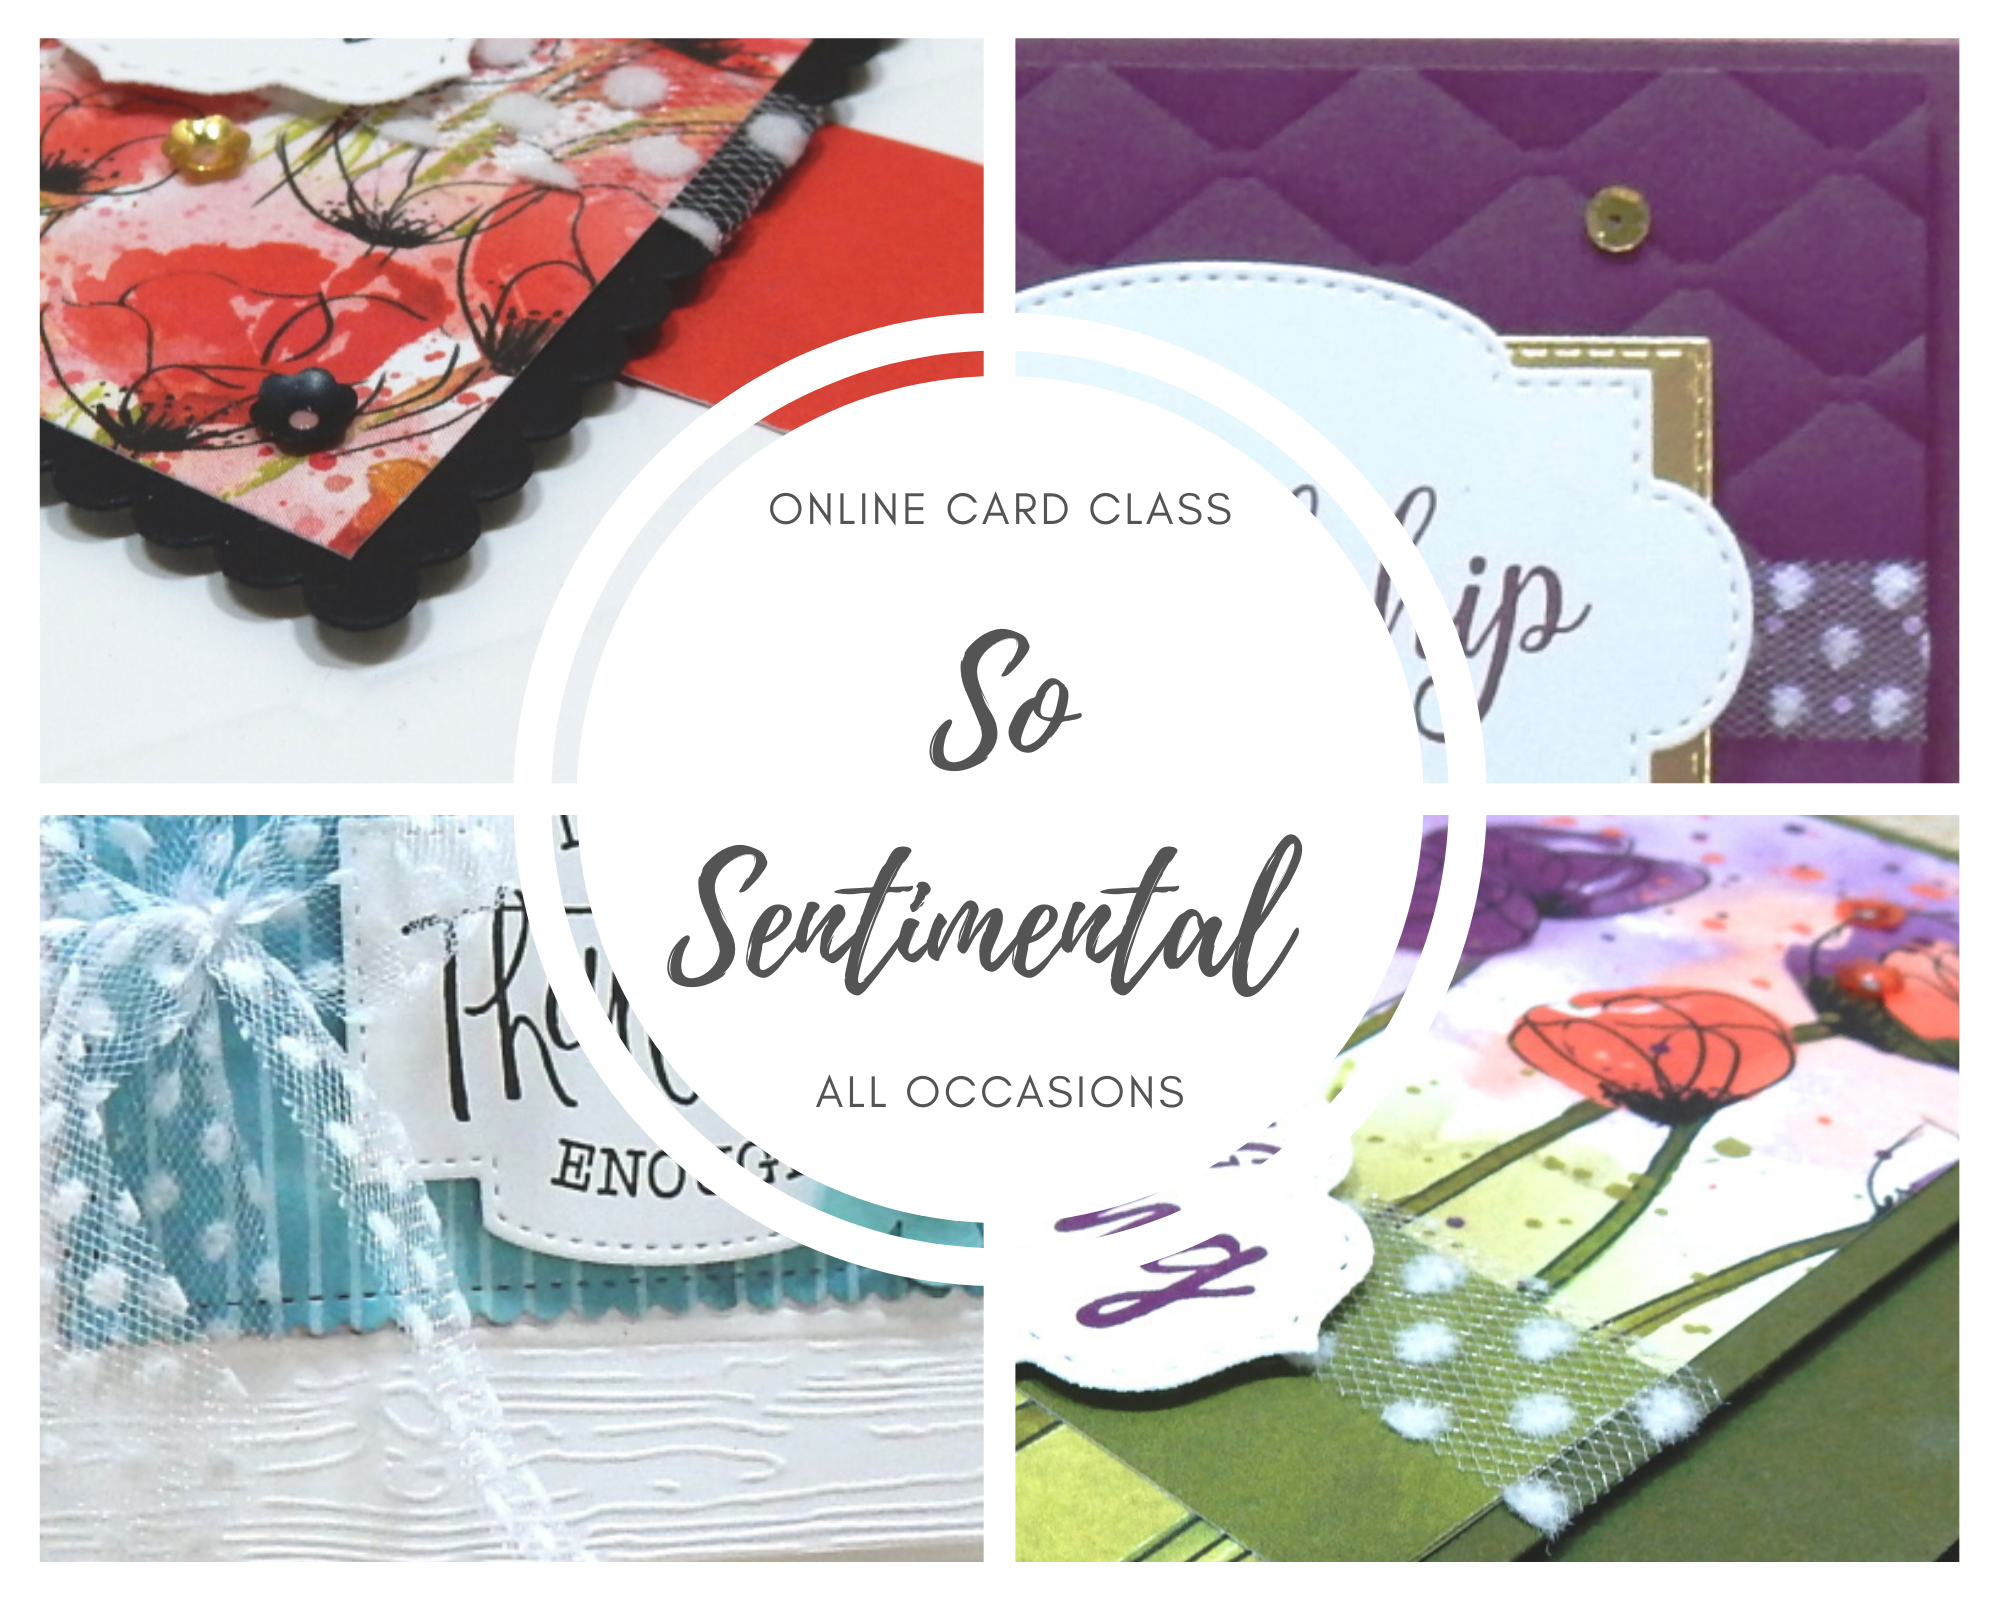 So Sentimental Class by wendy lee, Stampin Up, #creativeleeyours, wendy lee, creatively yours, creative-lee yours, stamping, paper crafting, handmade, cards, class, friend, so sentimental stamp set, stitched so sweetly, all occasions, poppies, DSP, patternpaper, crafts, paper crafts